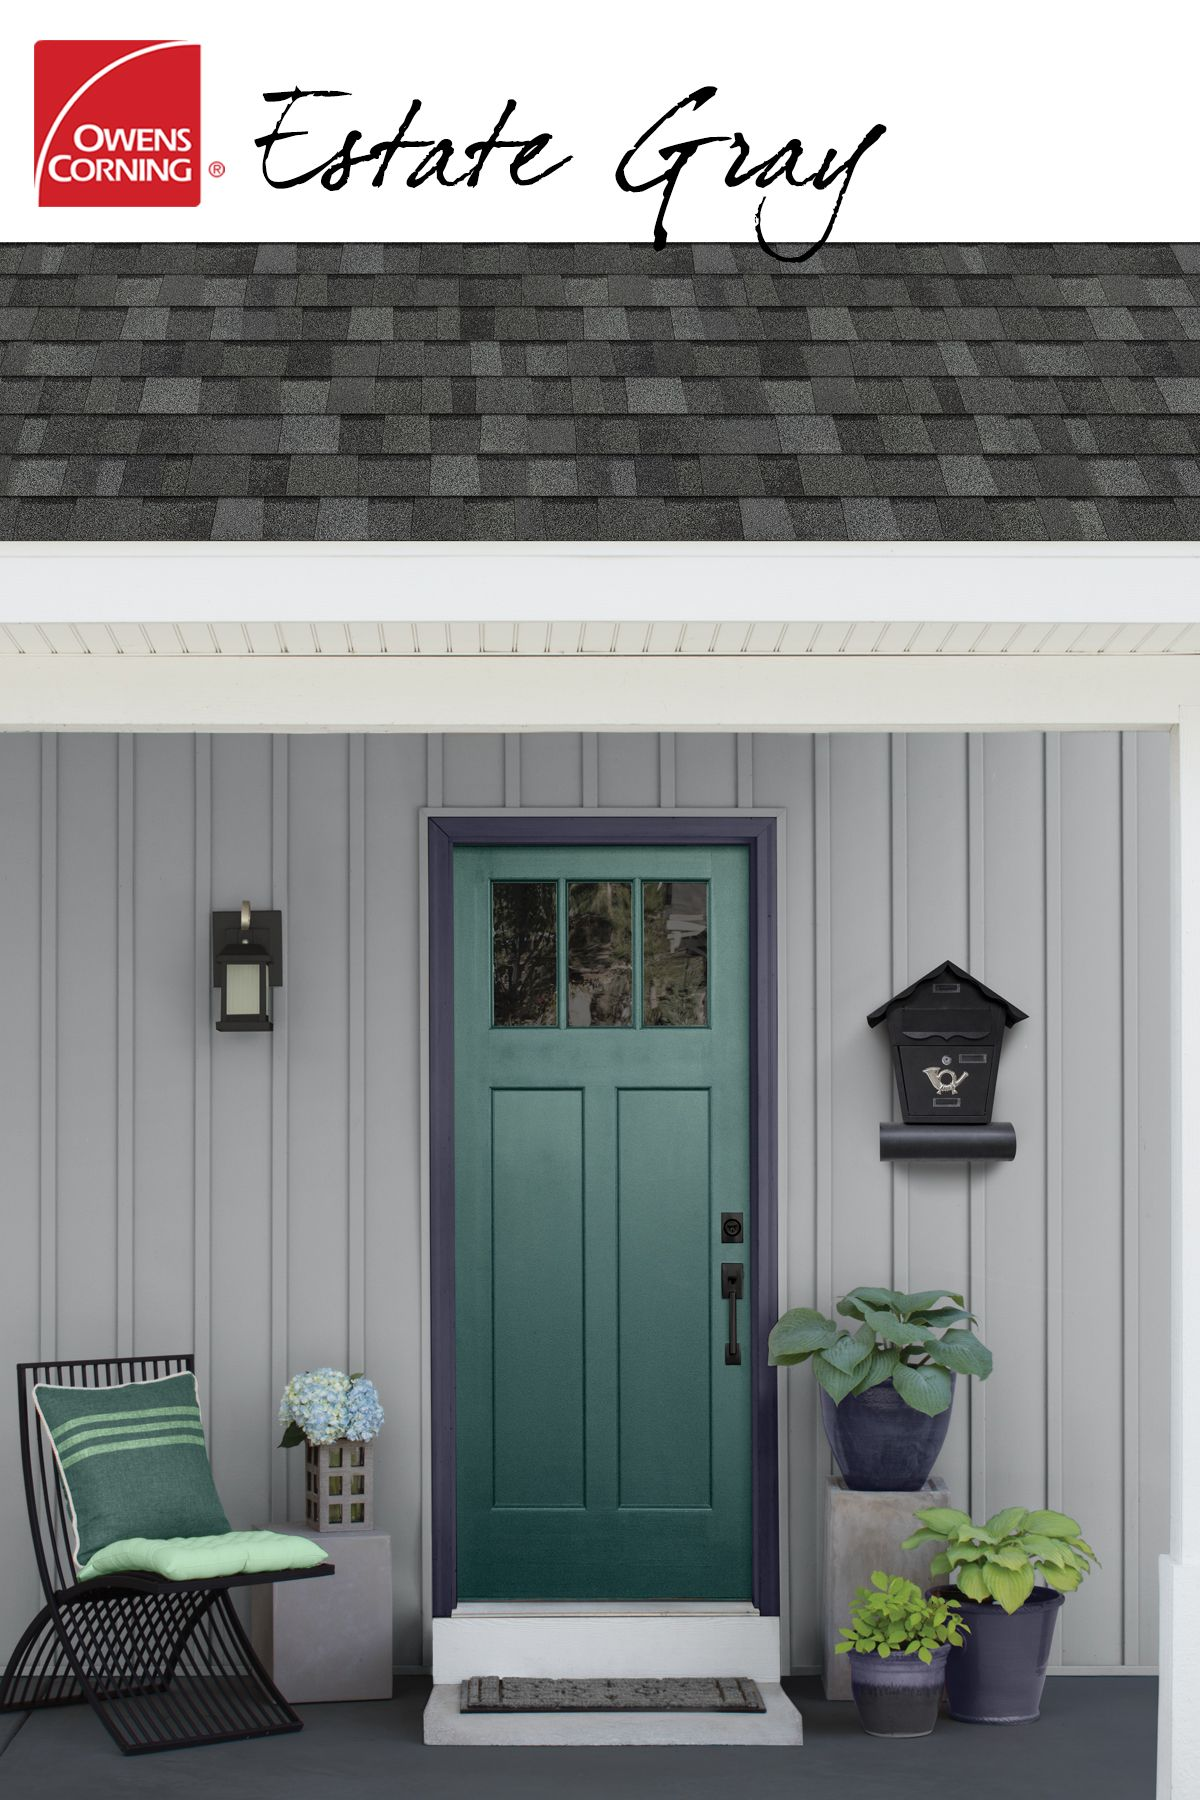 Best With A Roof Color Like Estate Gray The Exterior Of Your 400 x 300